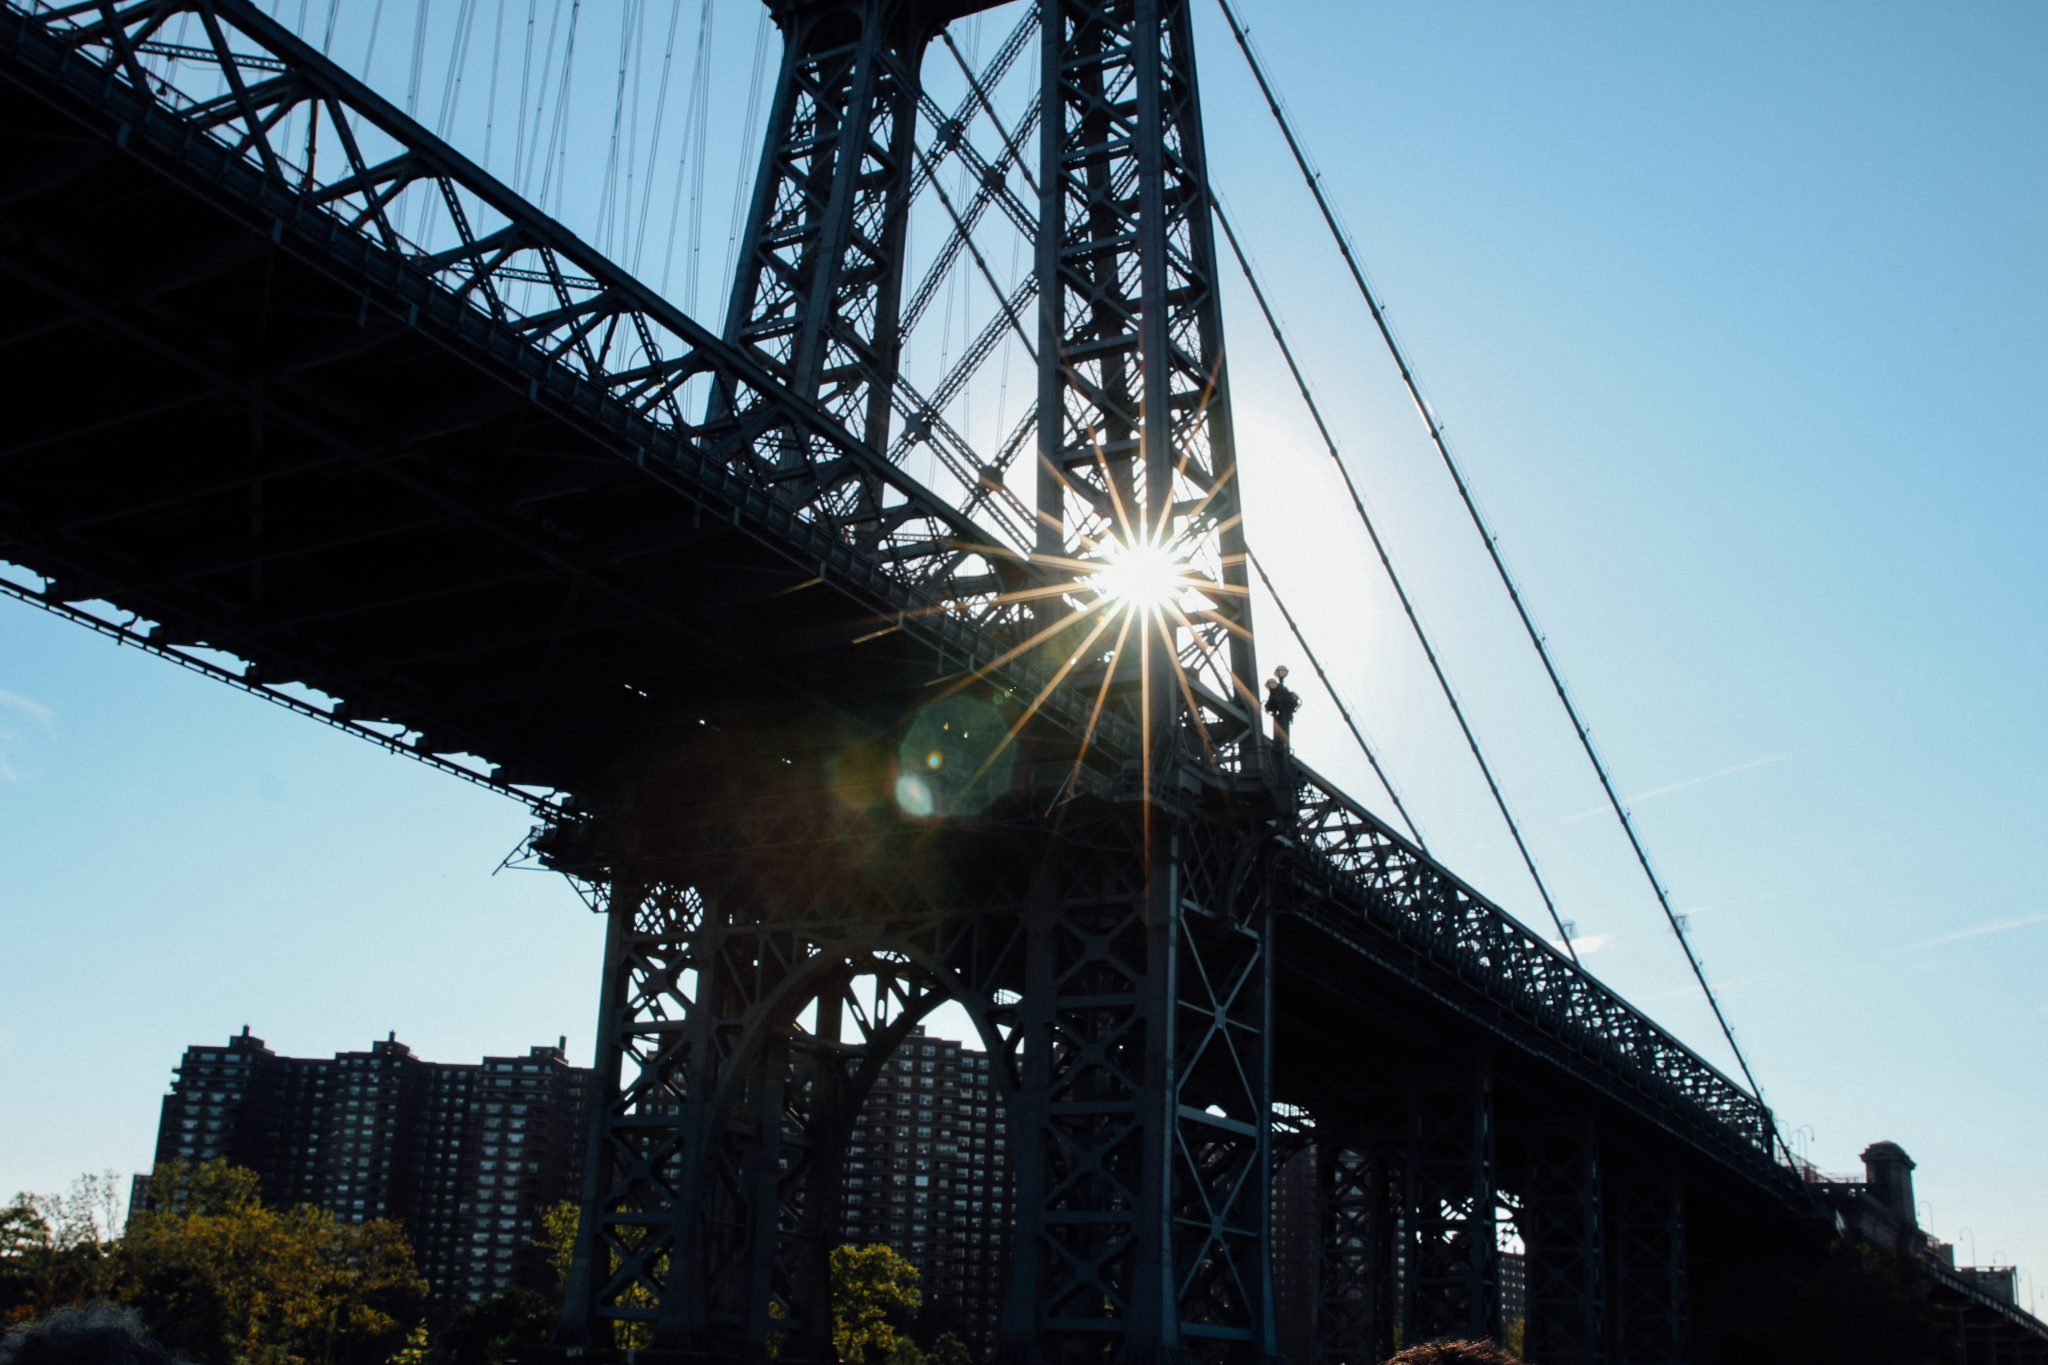 New York's Williamsburg Bridge. Taken by Luke Galati